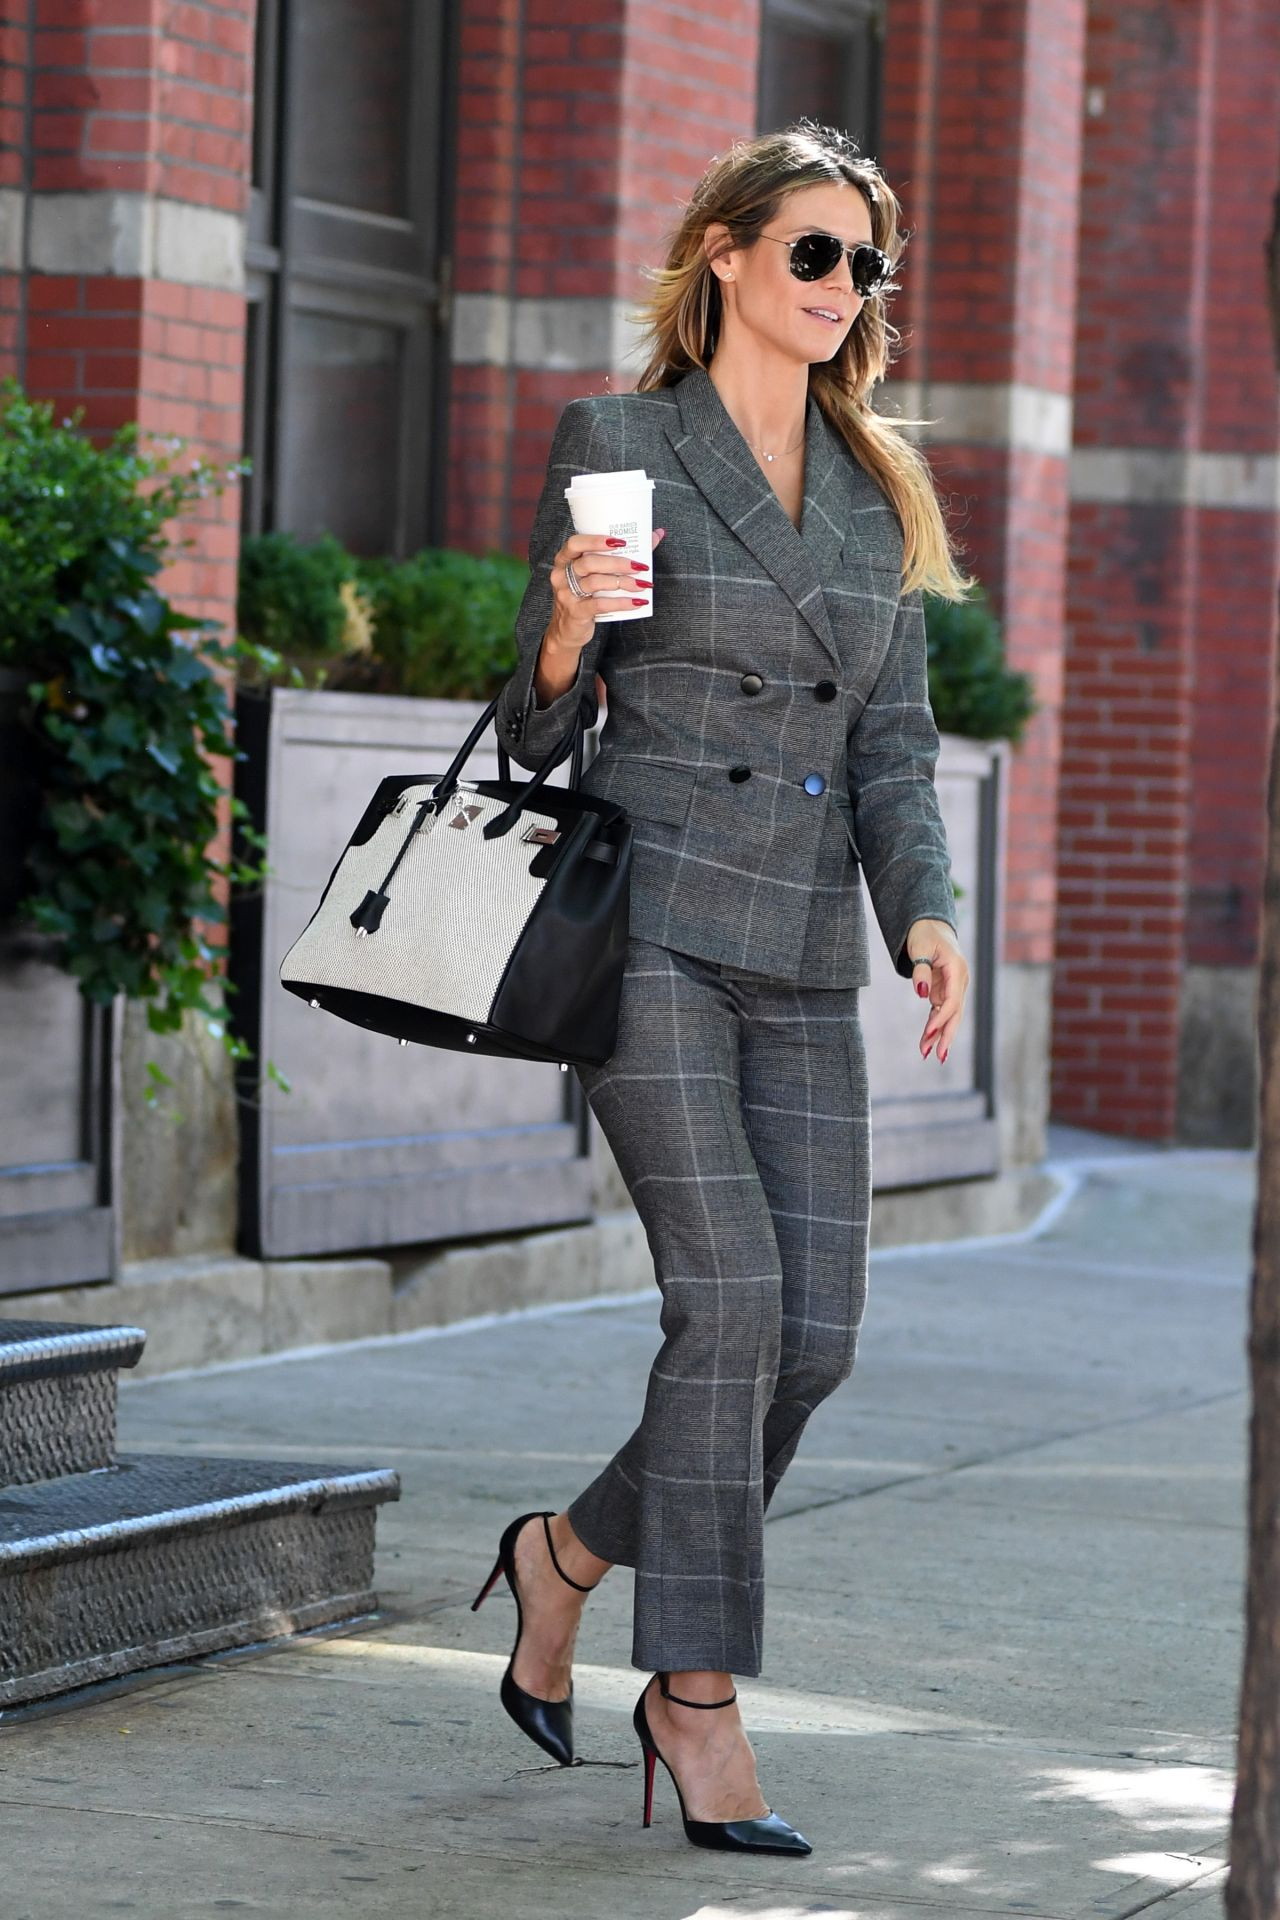 Heidi Klum Wears a Grey Suit  Out in NYC 06202017